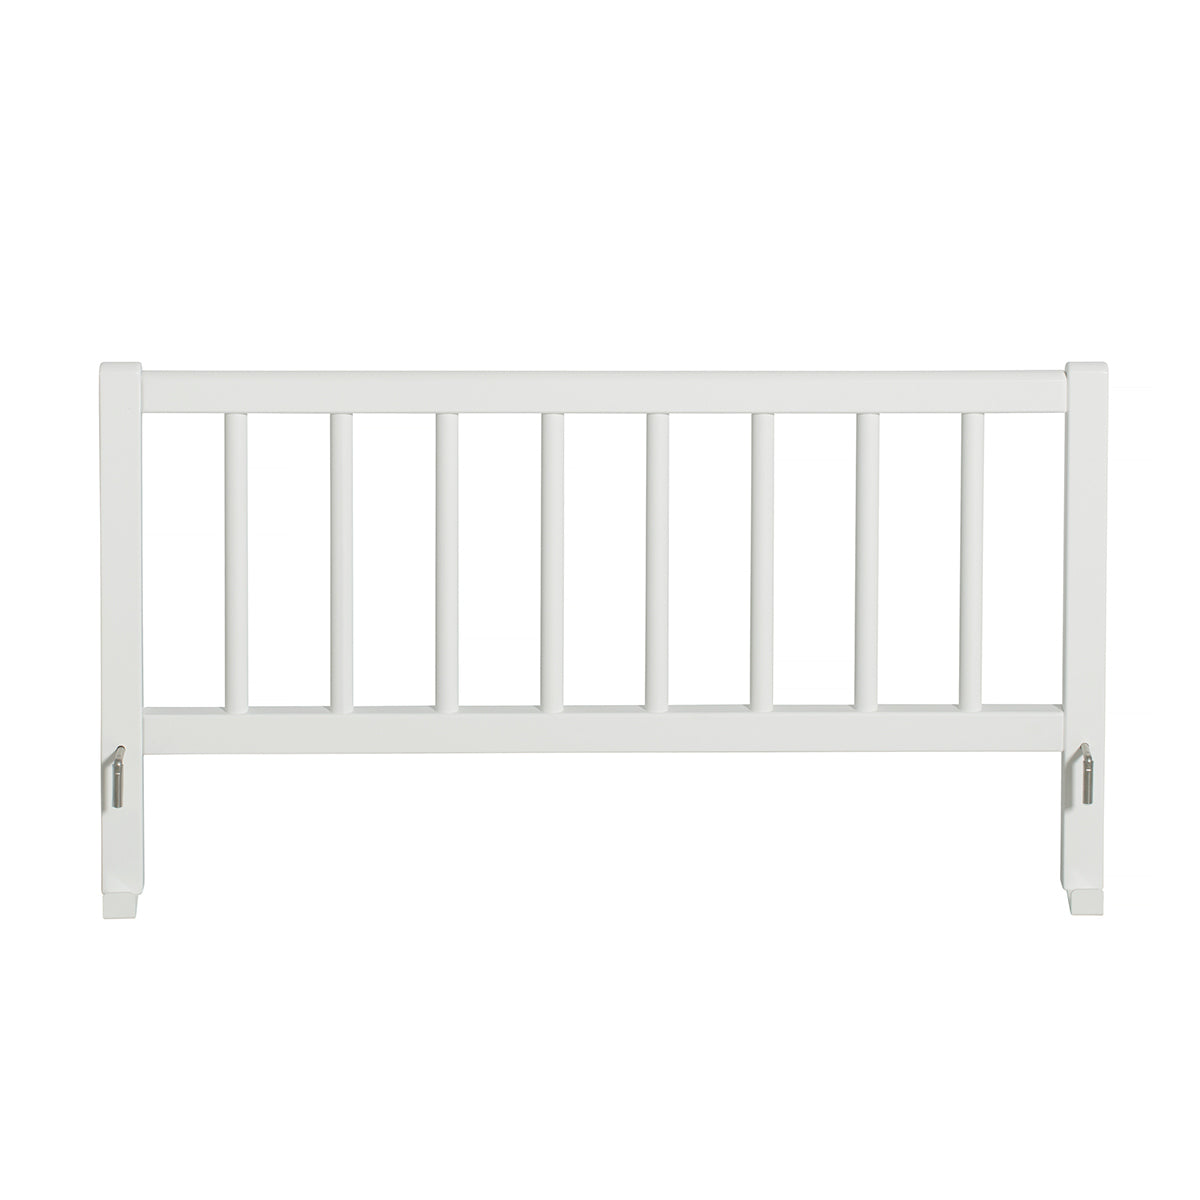 Oliver Furniture Wood Collection Juniorbett, 90 x 160cm, weiss